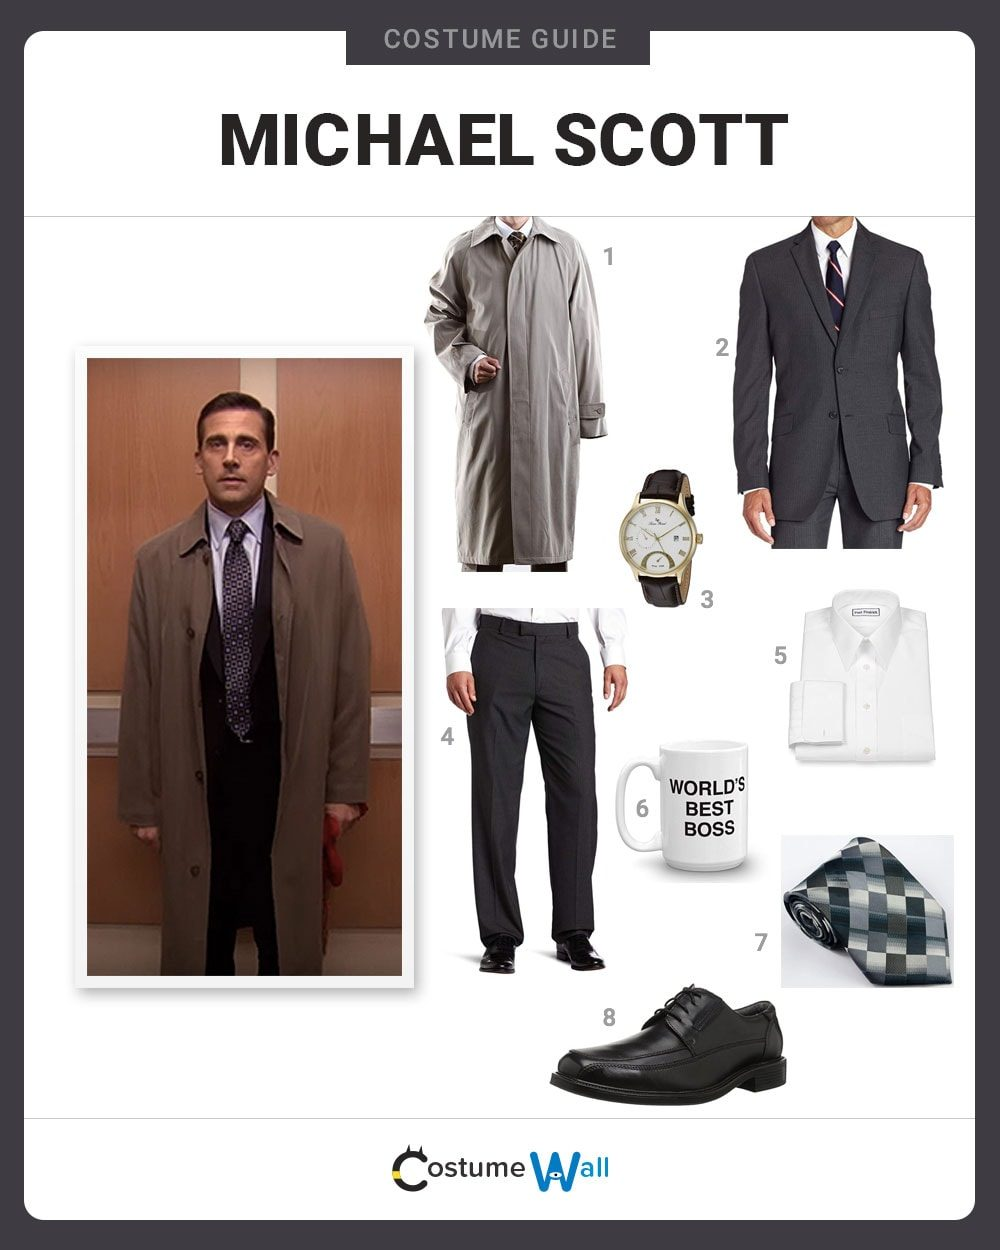 Michael Scott Costume Guide